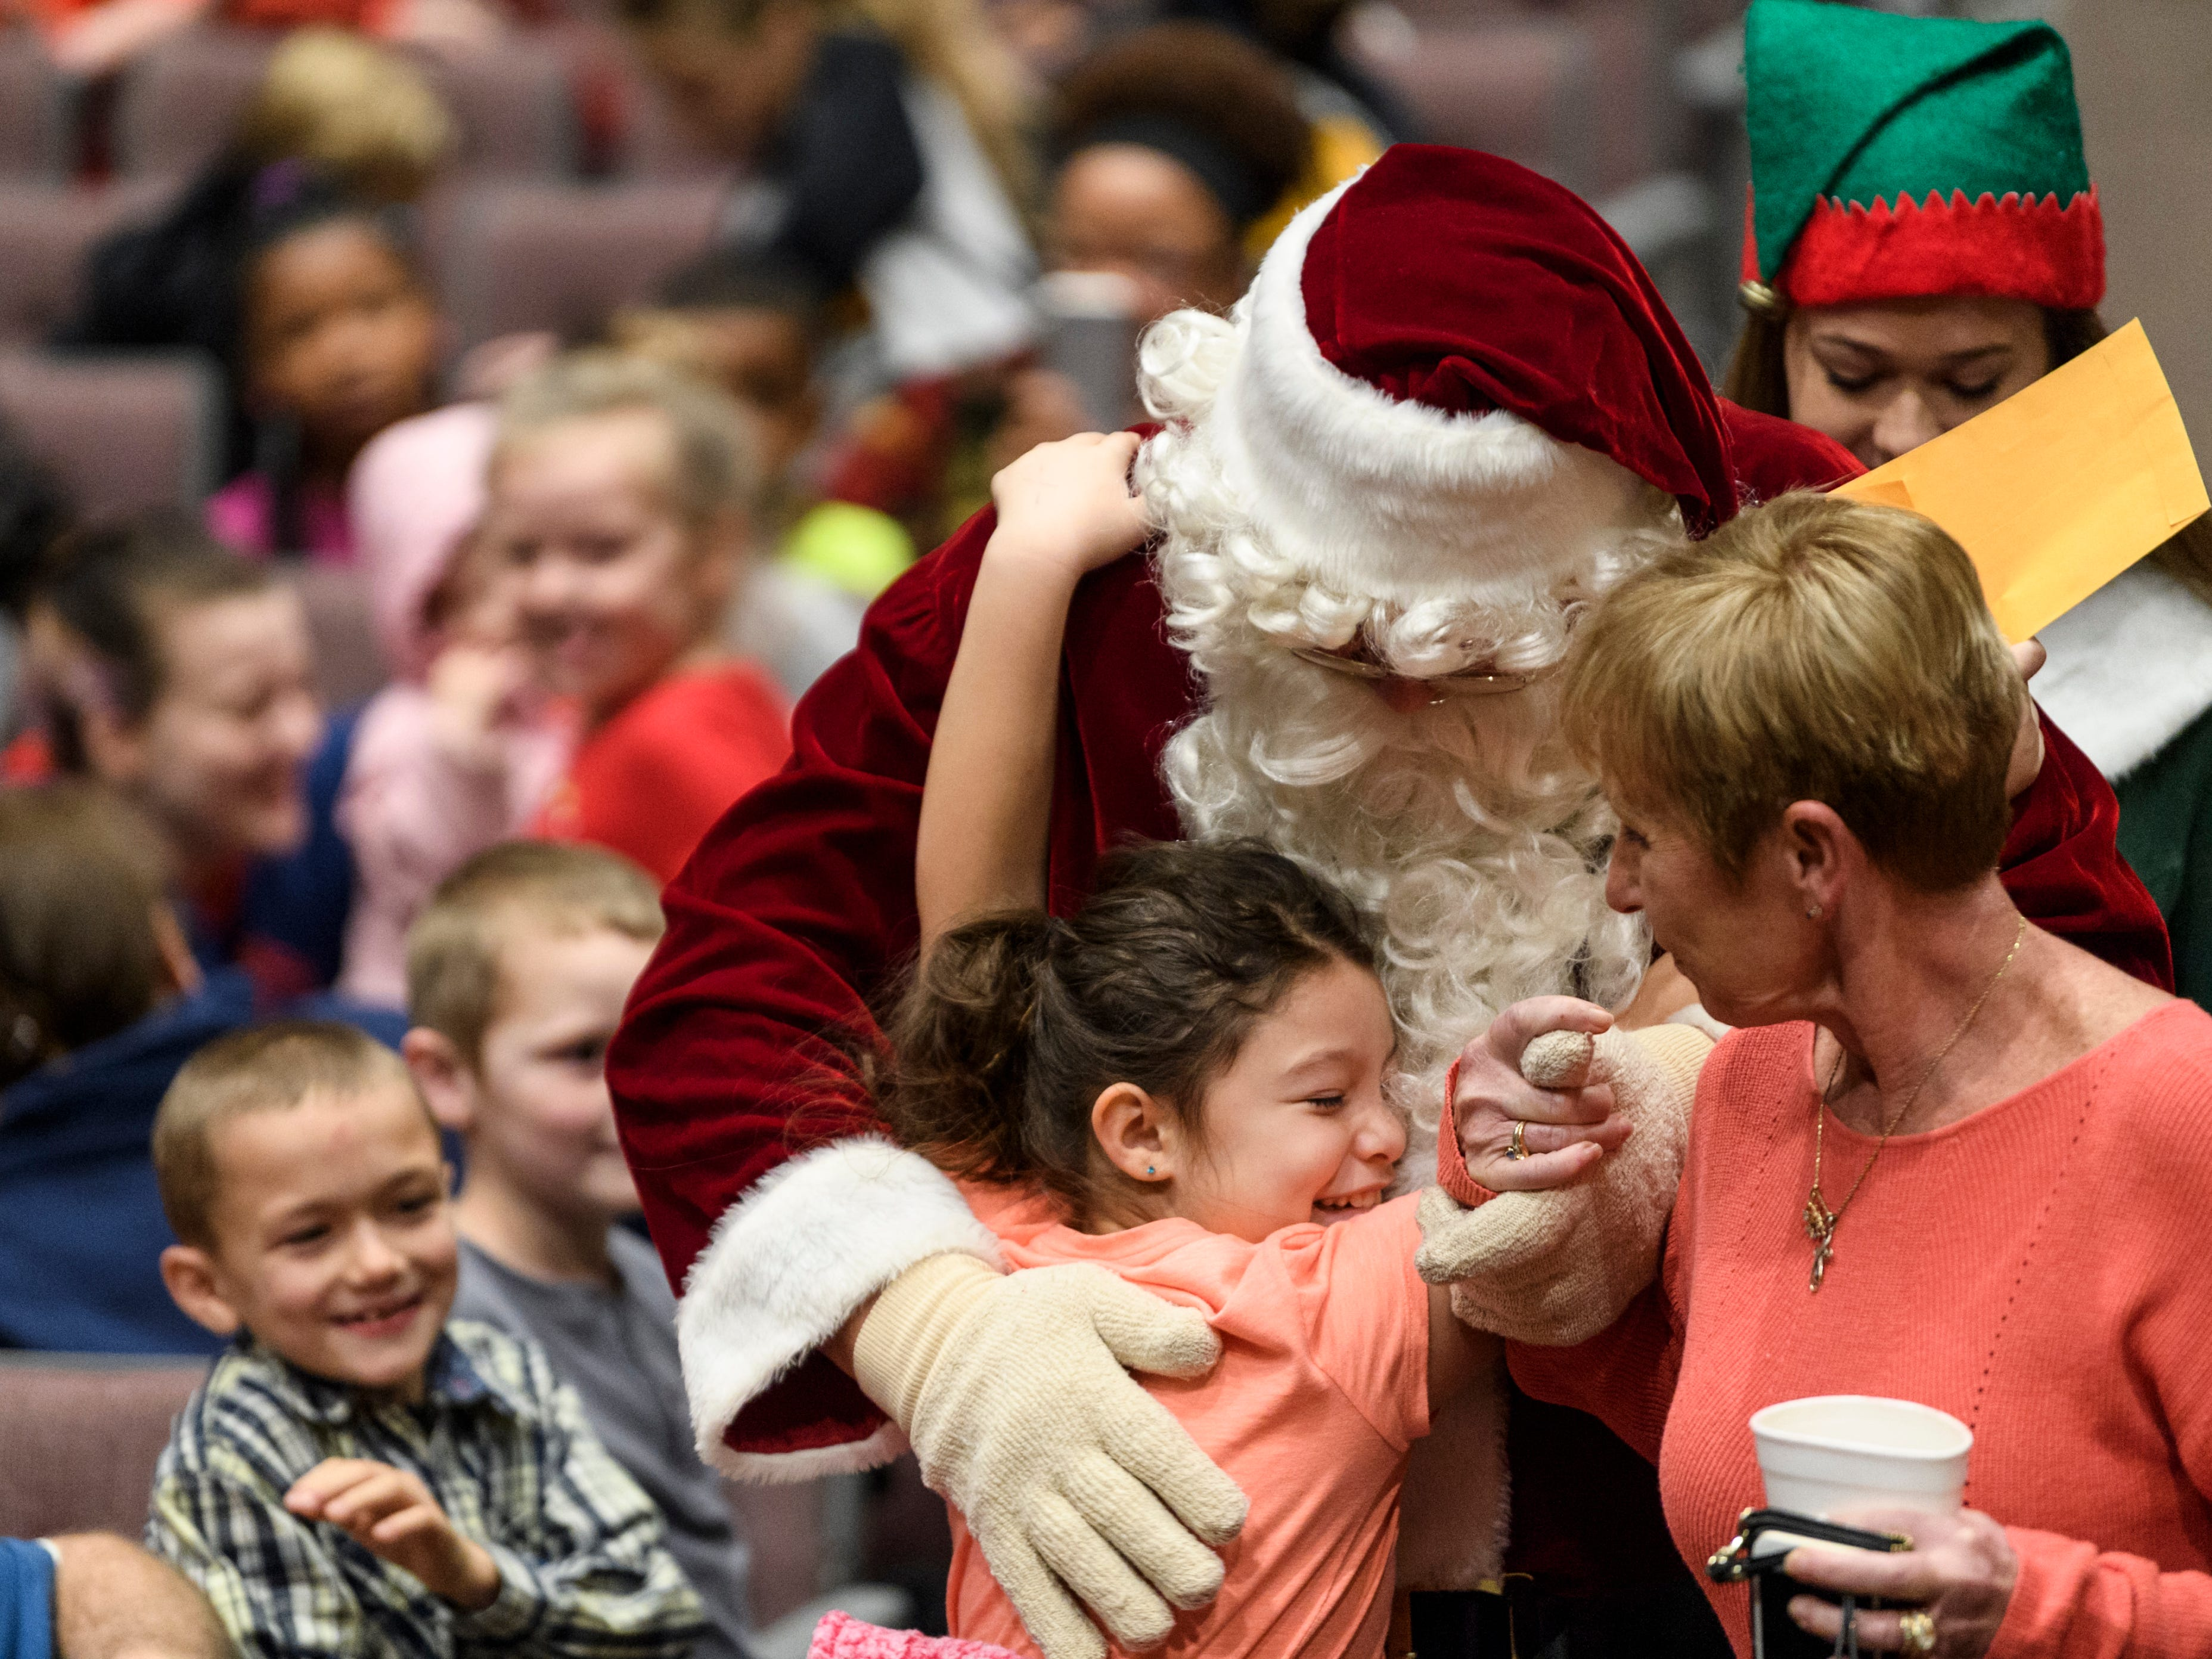 Carmen Sedillo, 8, latches onto Santa Claus as Phyllis Pendergraft, right, leads him to the stage to begin taking pictures with all the children in attendance at the Goodfellows Christmas party held at South Middle School in Henderson, Ky., Sunday, Dec. 16, 2018. More than 600 children were invited to attend the annual Christmas party, where they watched magic and puppet shows, took portraits with Santa and received large bags full of toys and clothing.